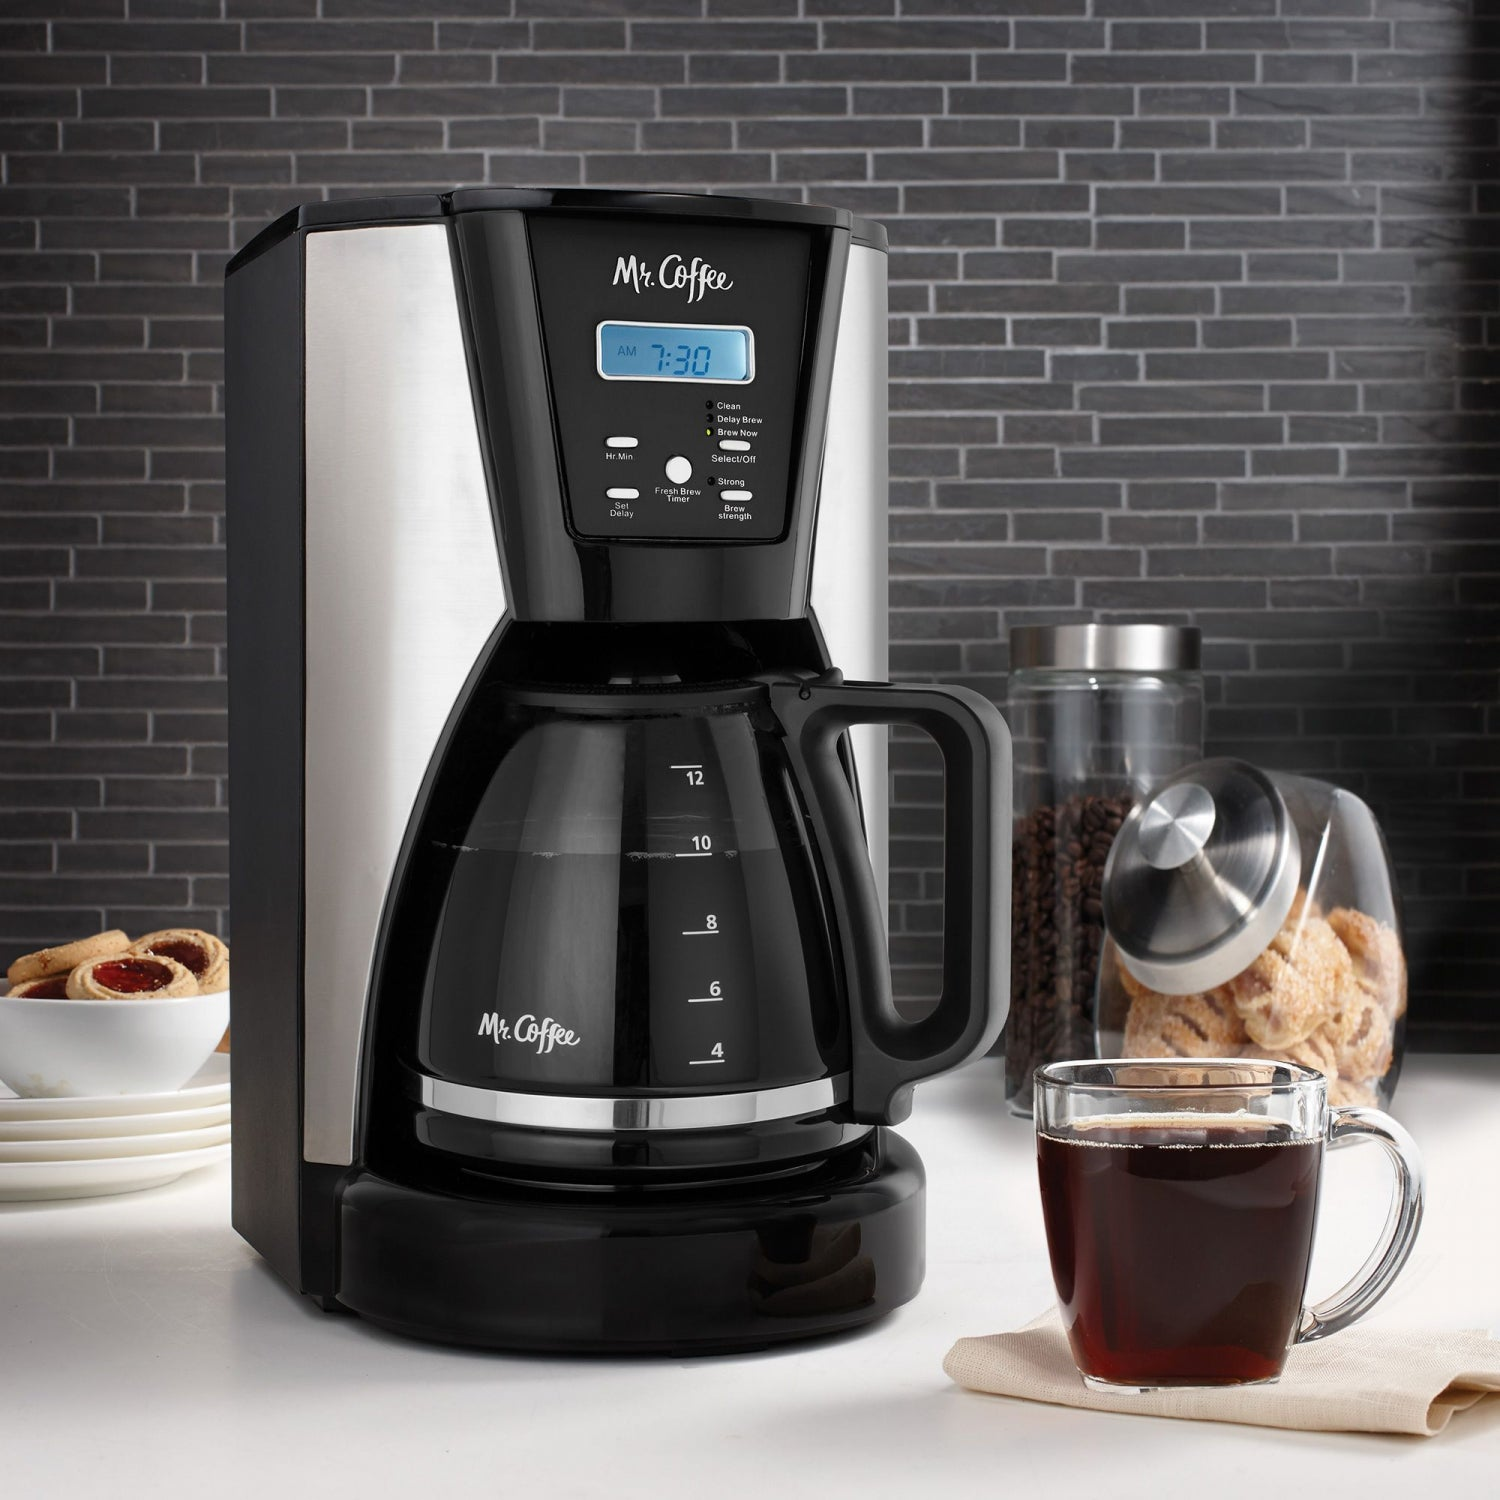 Mr. Coffee 12-Cup Programmable Coffee Maker in Chrome/Black | MrOrganic Store